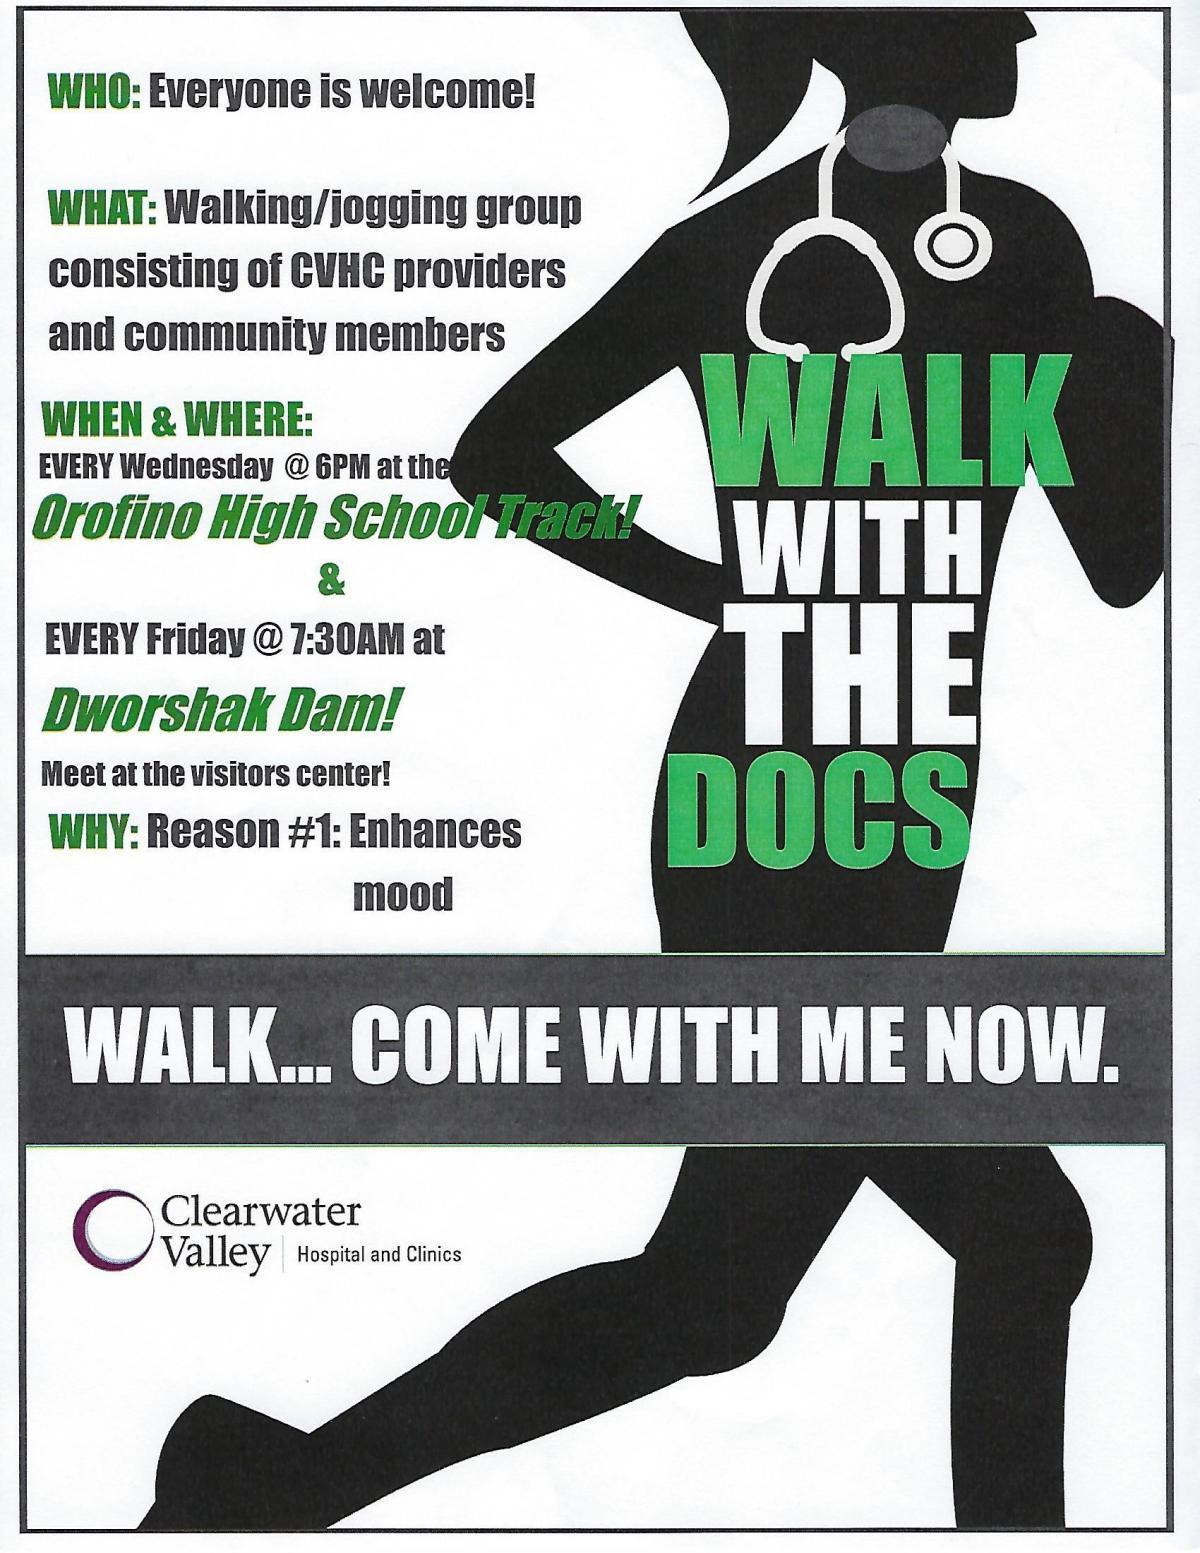 Walk With The Docs of CVHC